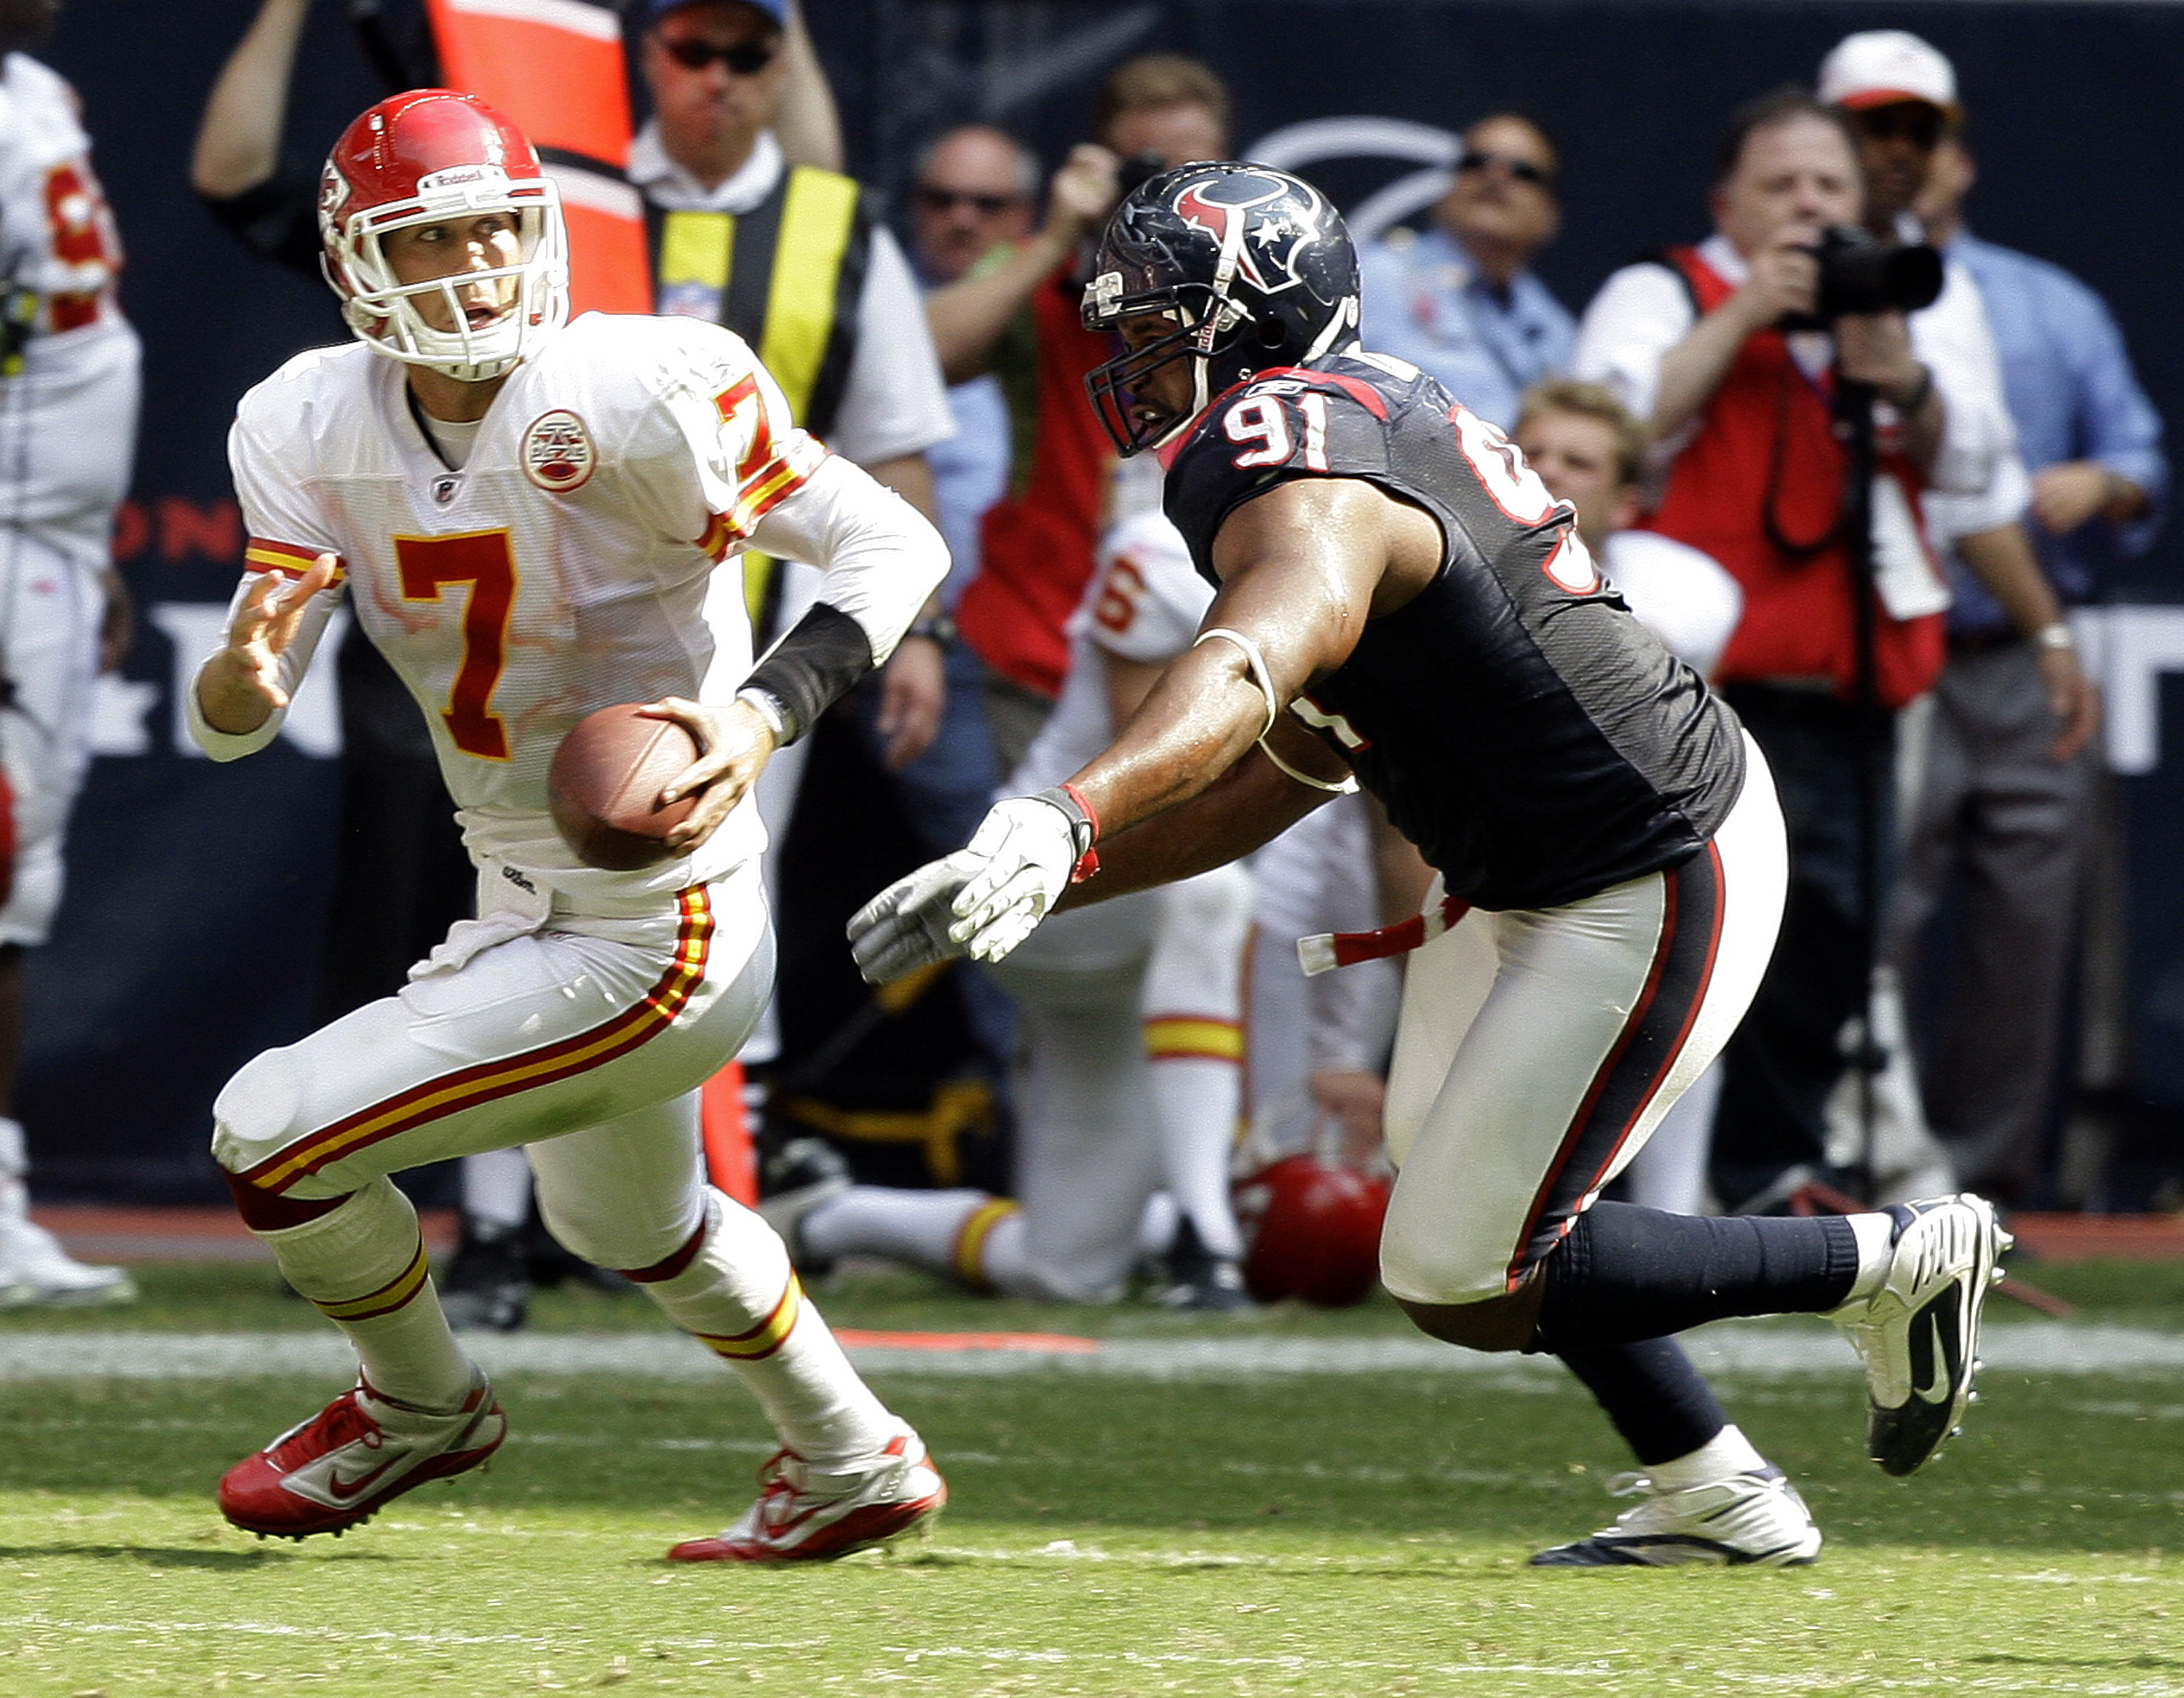 HOUSTON - OCTOBER 17:  Defensive tackle Amobi Akoye #91 of the Houston Texans sacks quarterback Matt Cassel of the Kansas City Chiefs on the final play of the game to secure a 35-31 win at Reliant Stadium on October 17, 2010 in Houston, Texas.  (Photo by